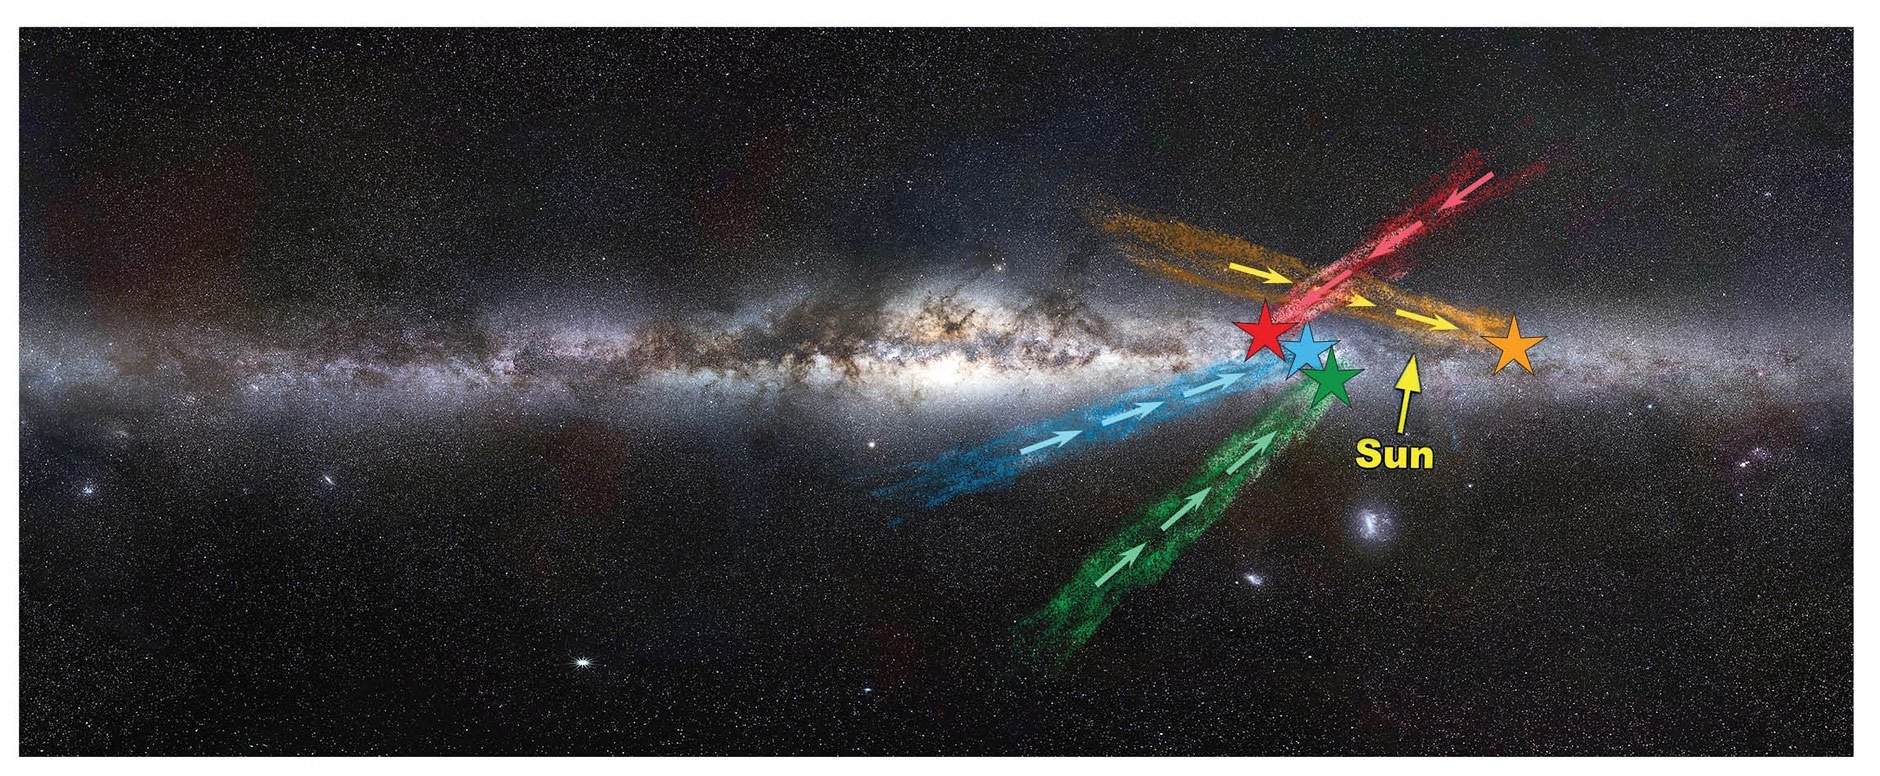 New-Class-of-Hypervelocity-Stars-Discovered